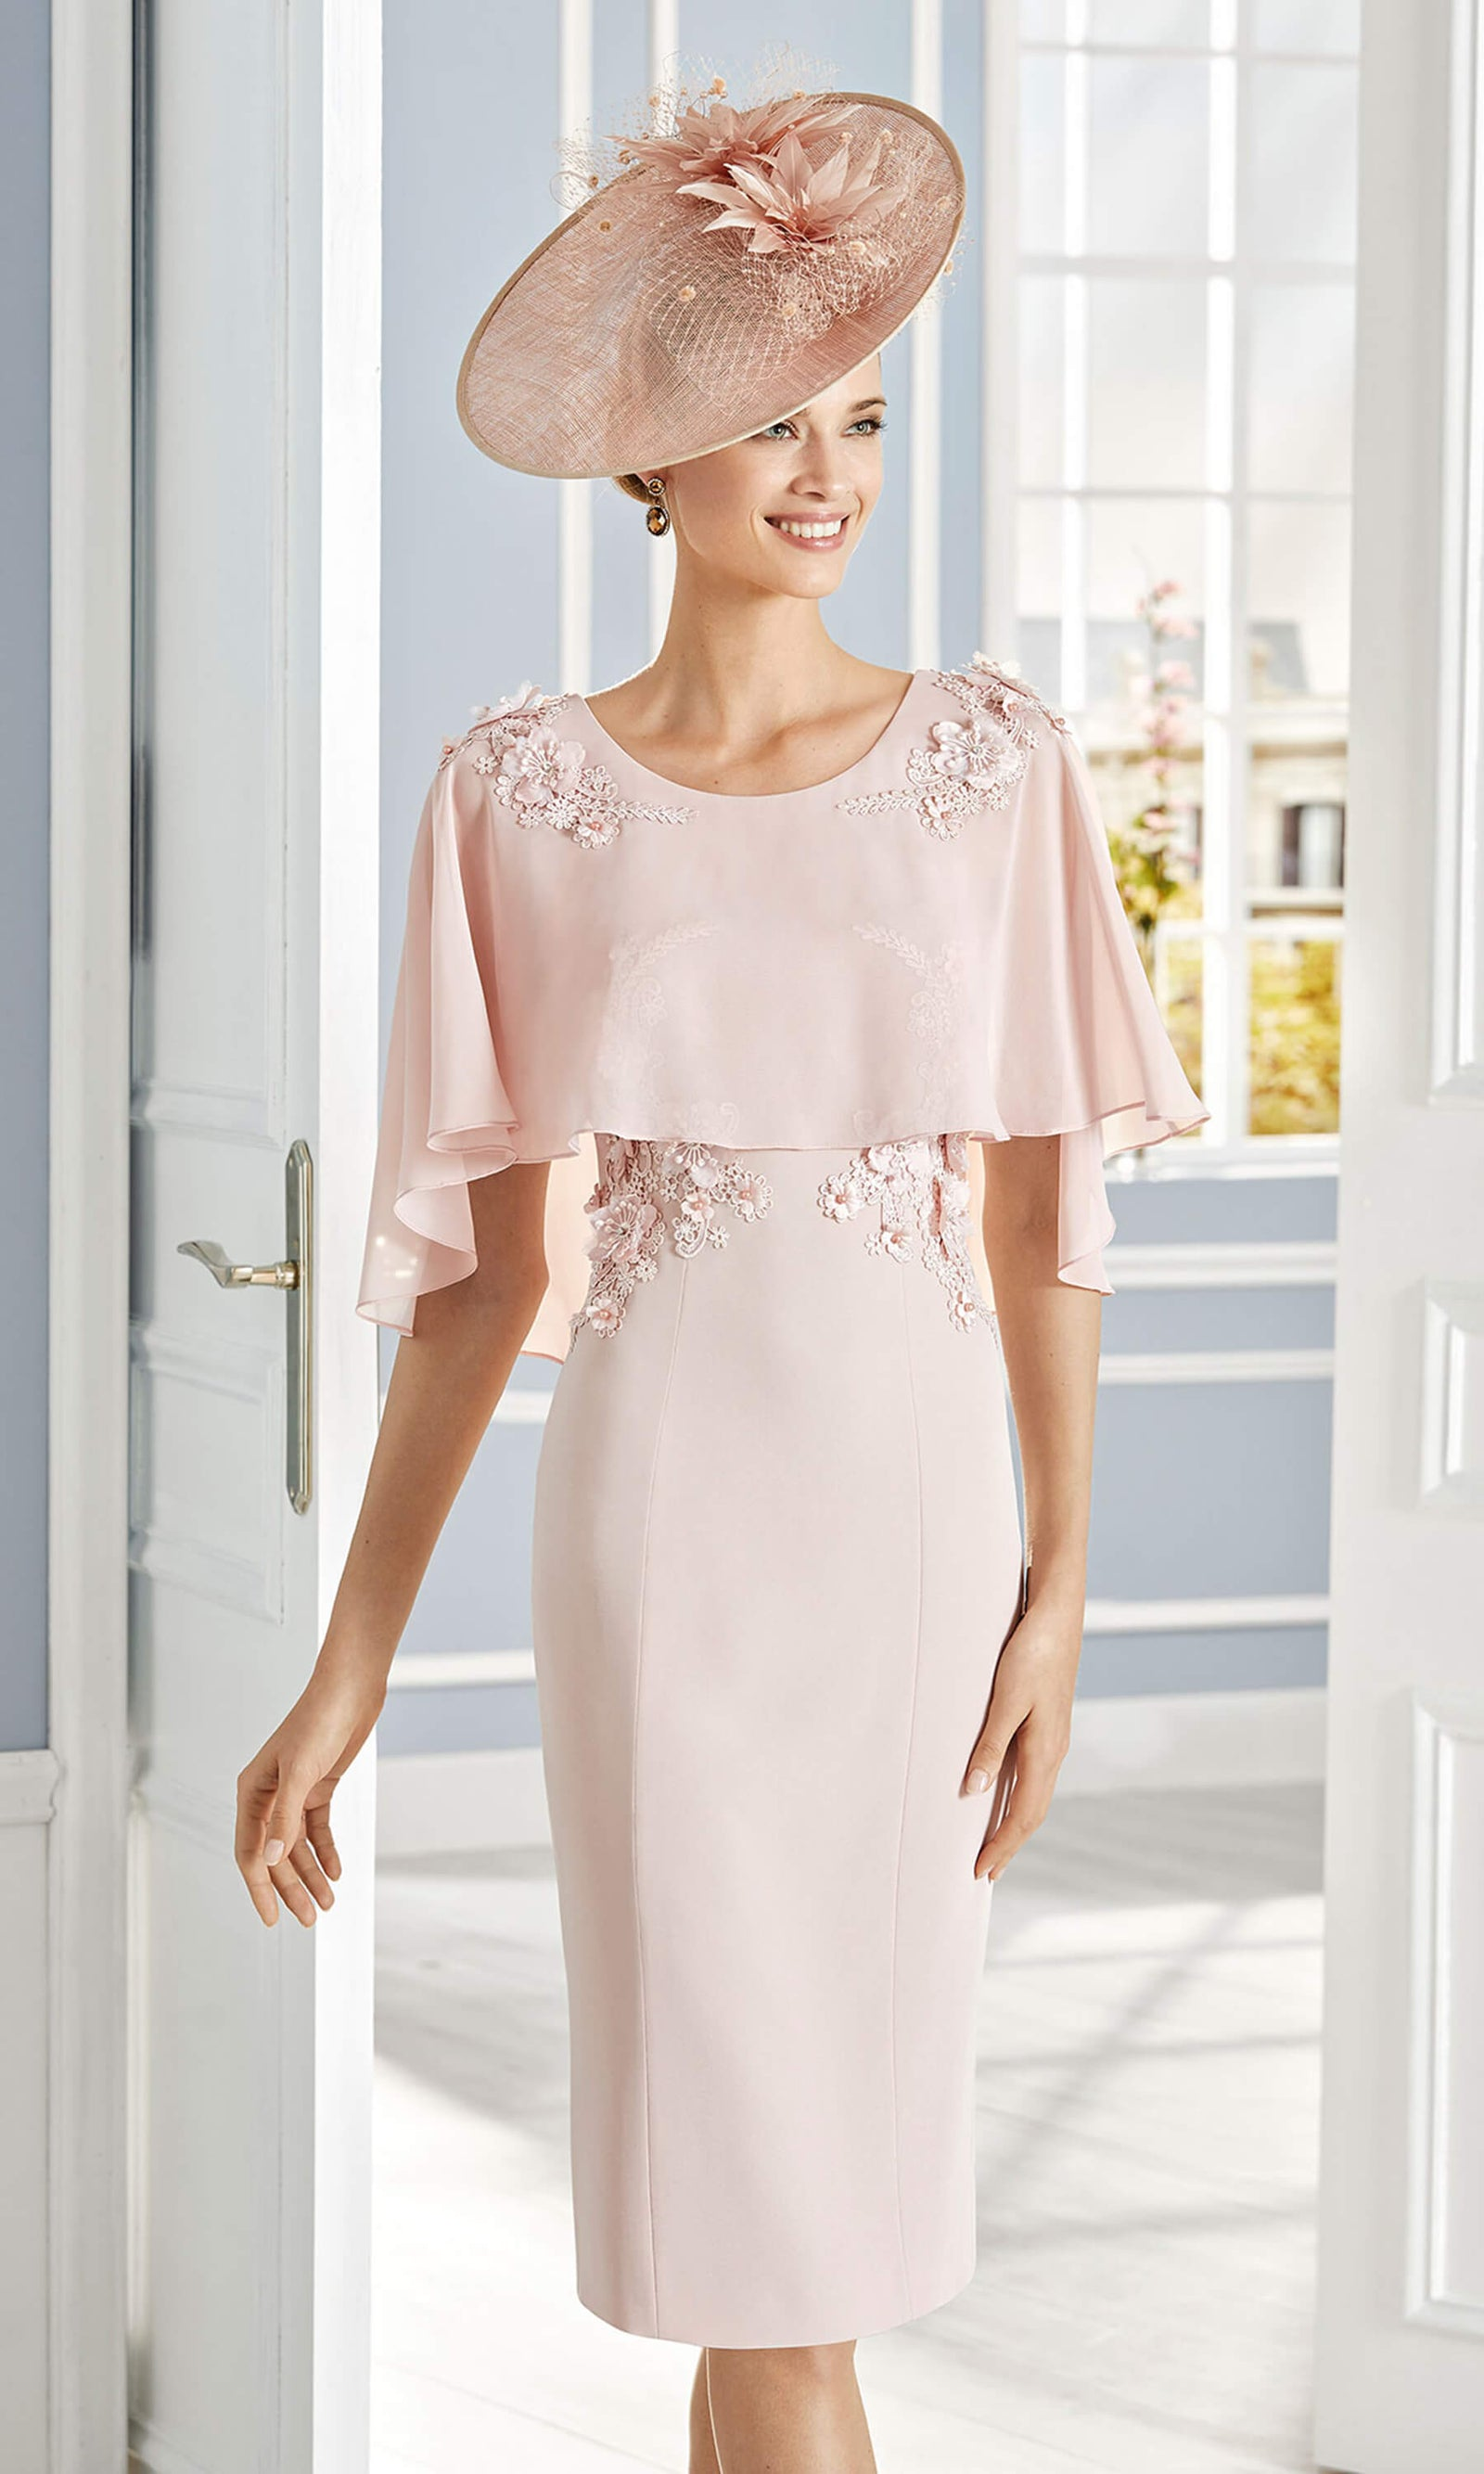 4G160 Pink Couture Club Occasion Dress With Cape